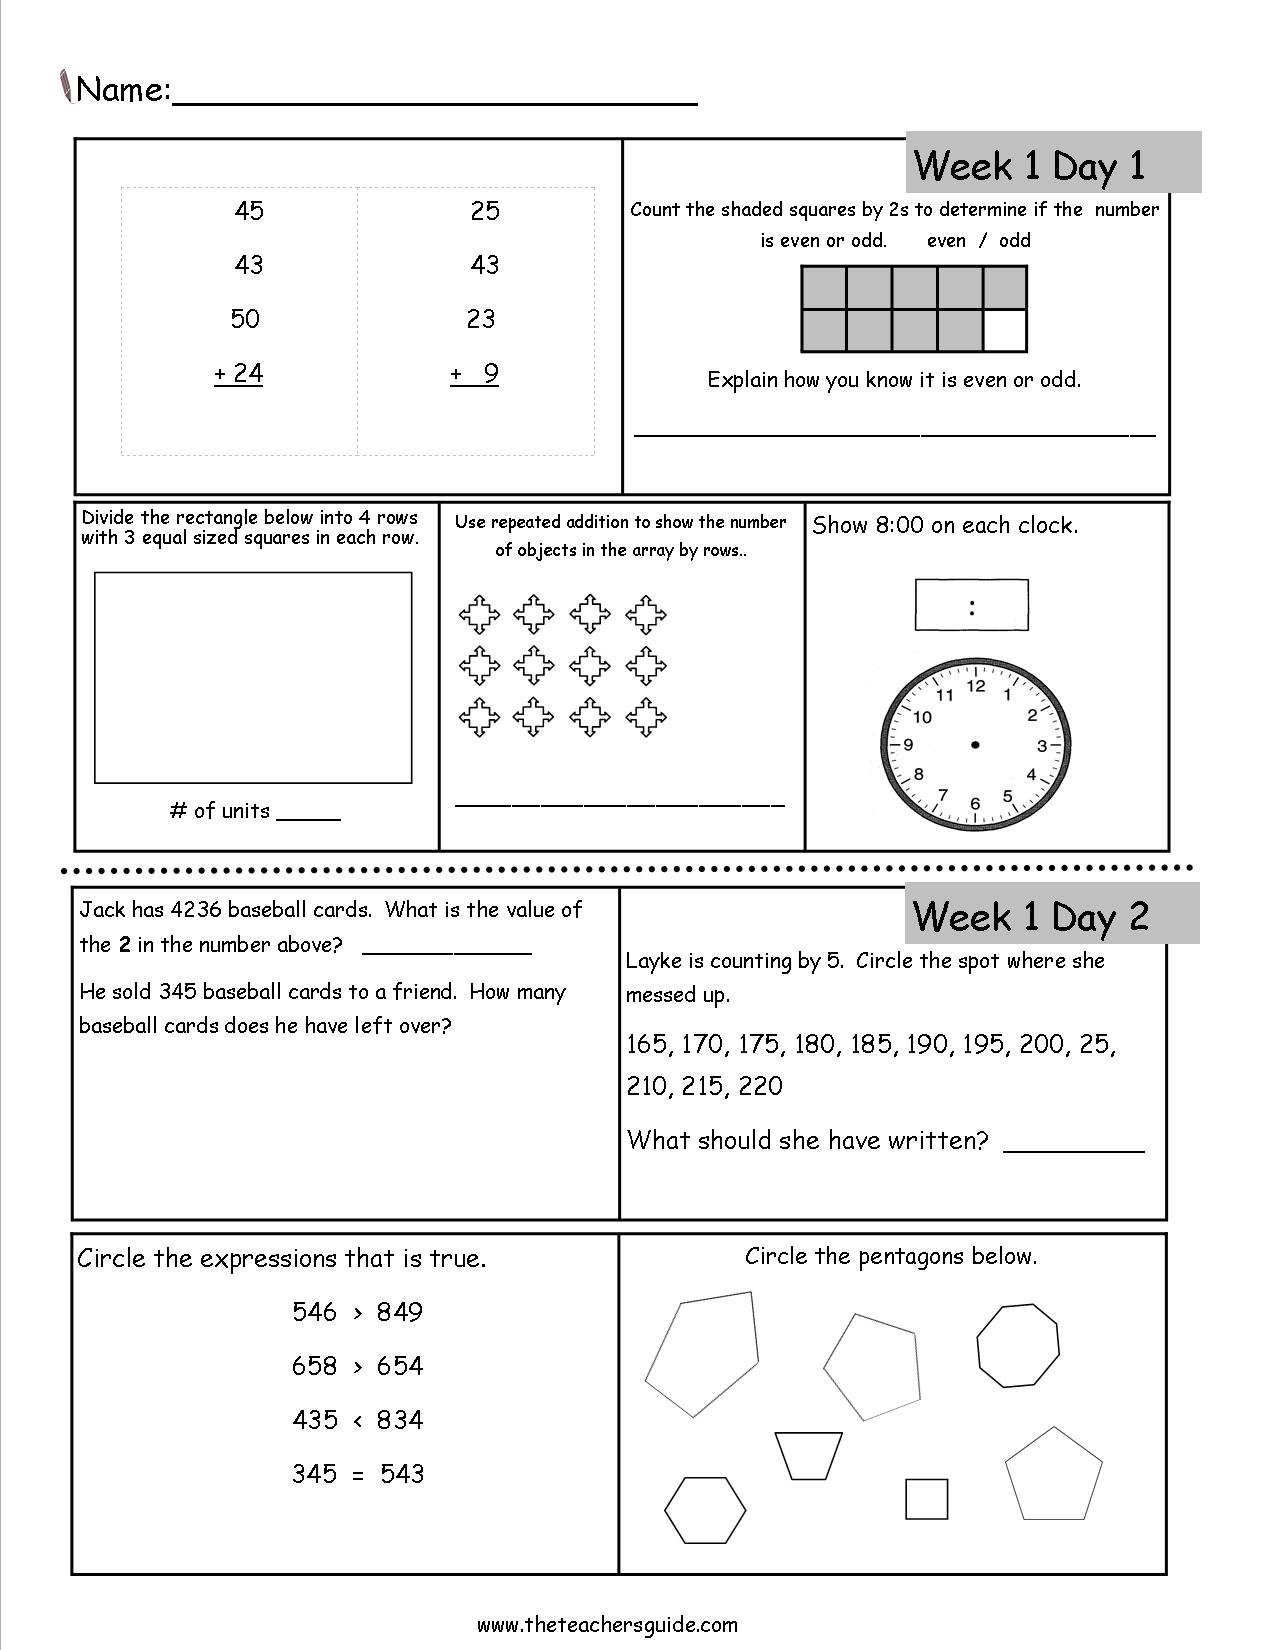 Math homework for 3rd graders. Third Grade Math Worksheets ...